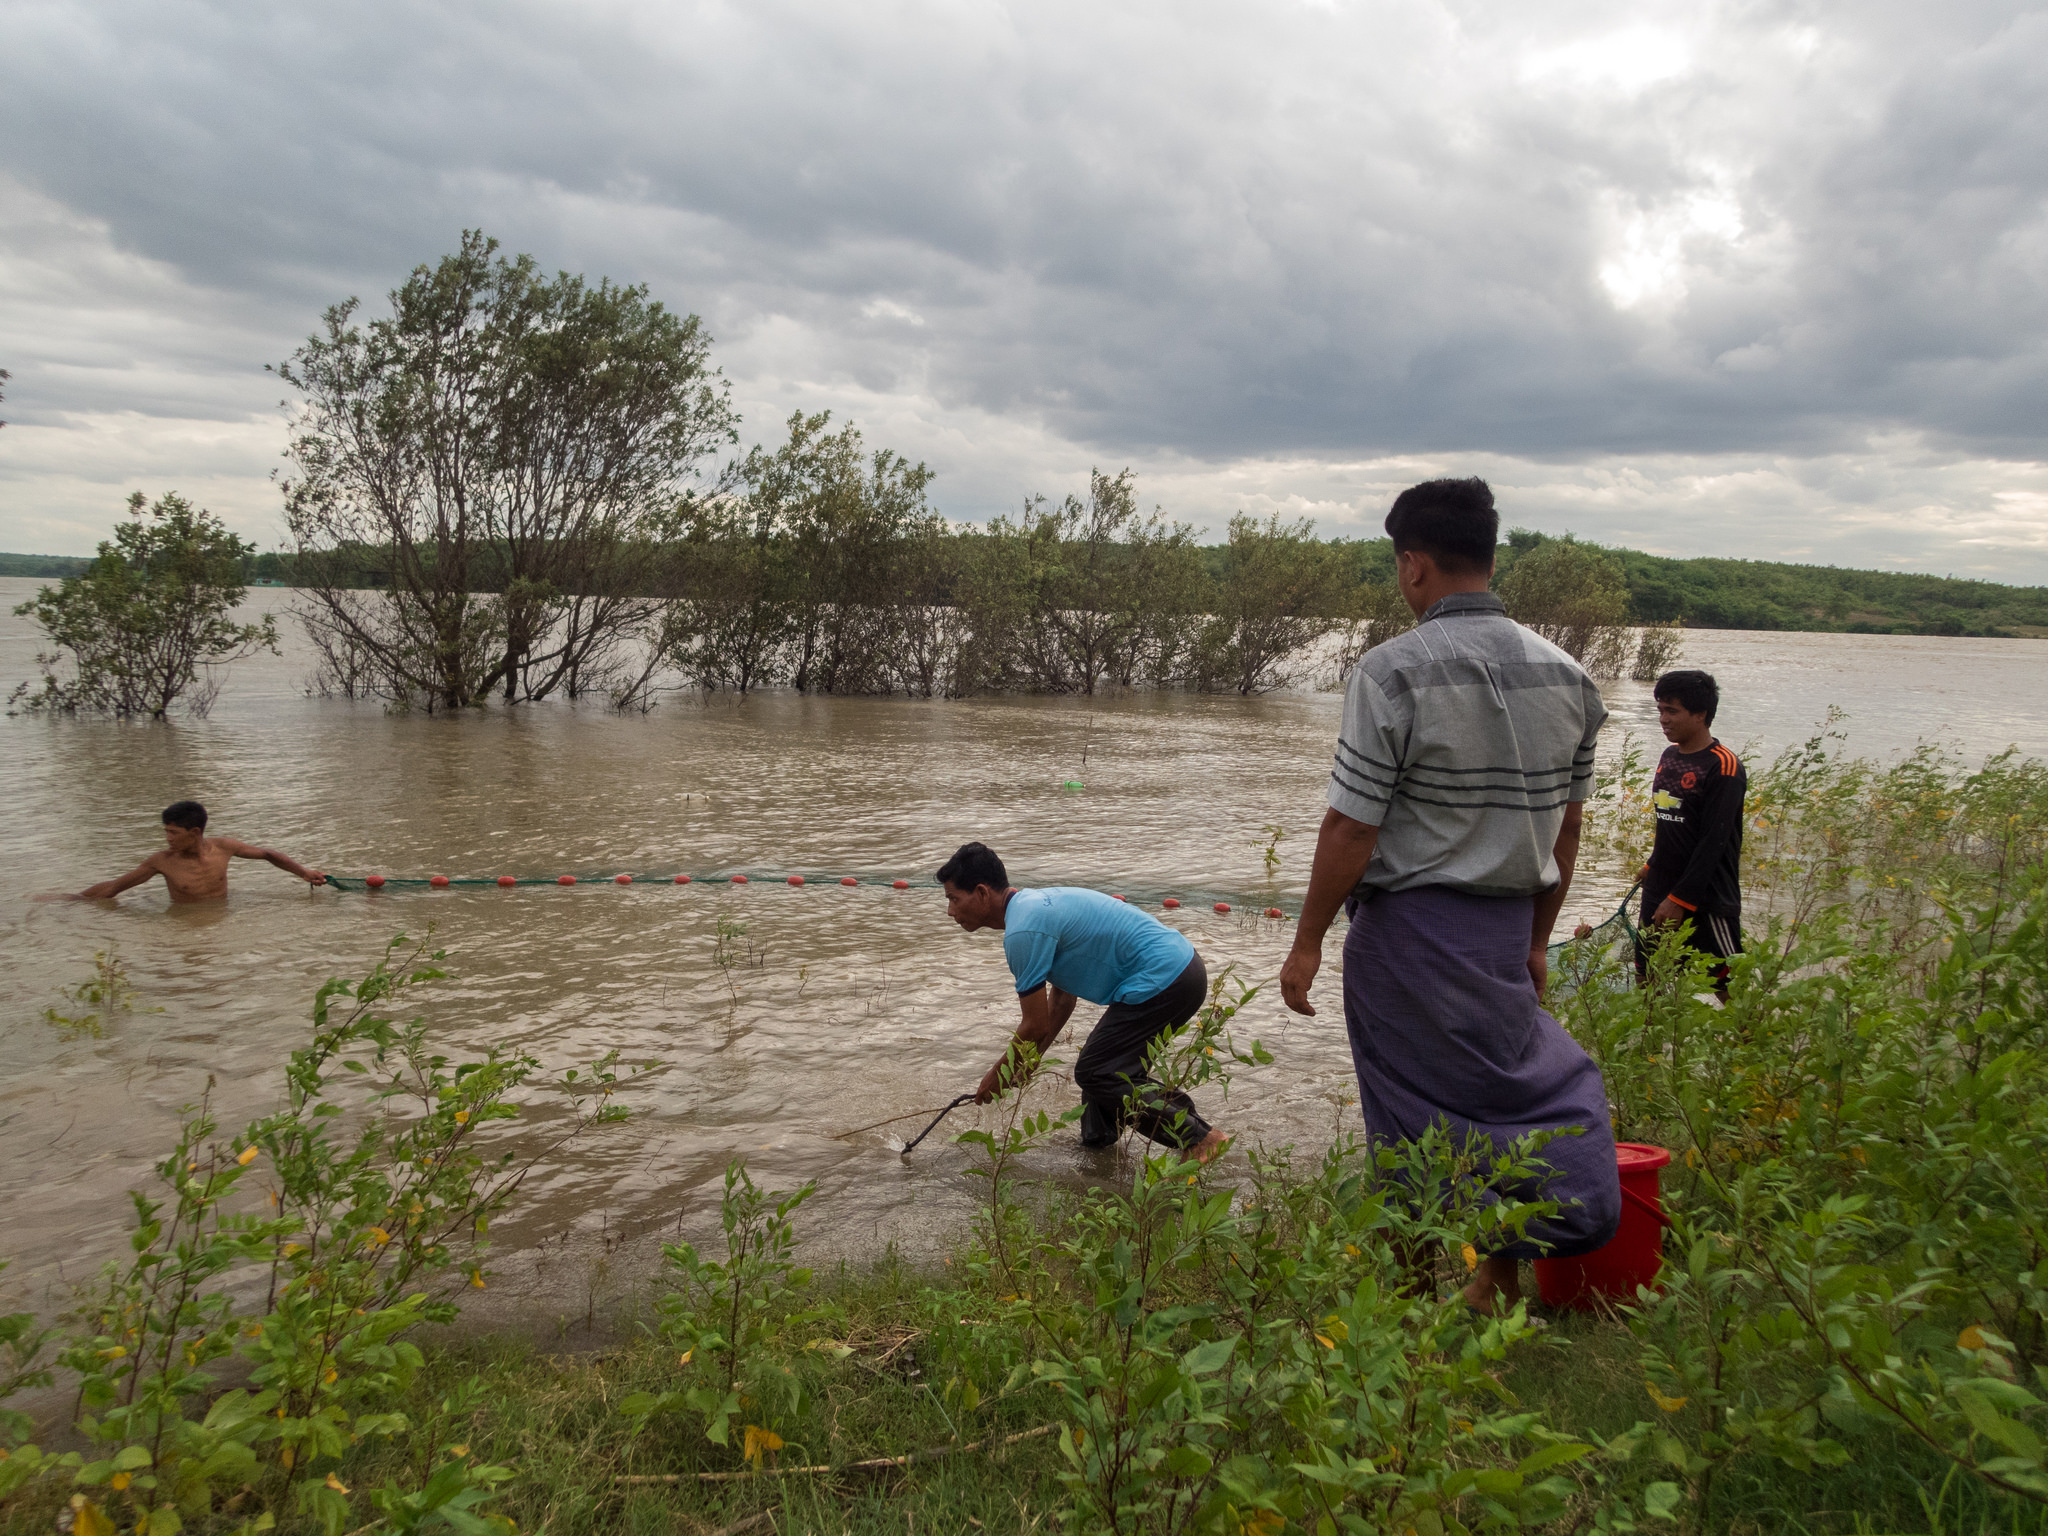 Fish survey on the Ayeyarwady River